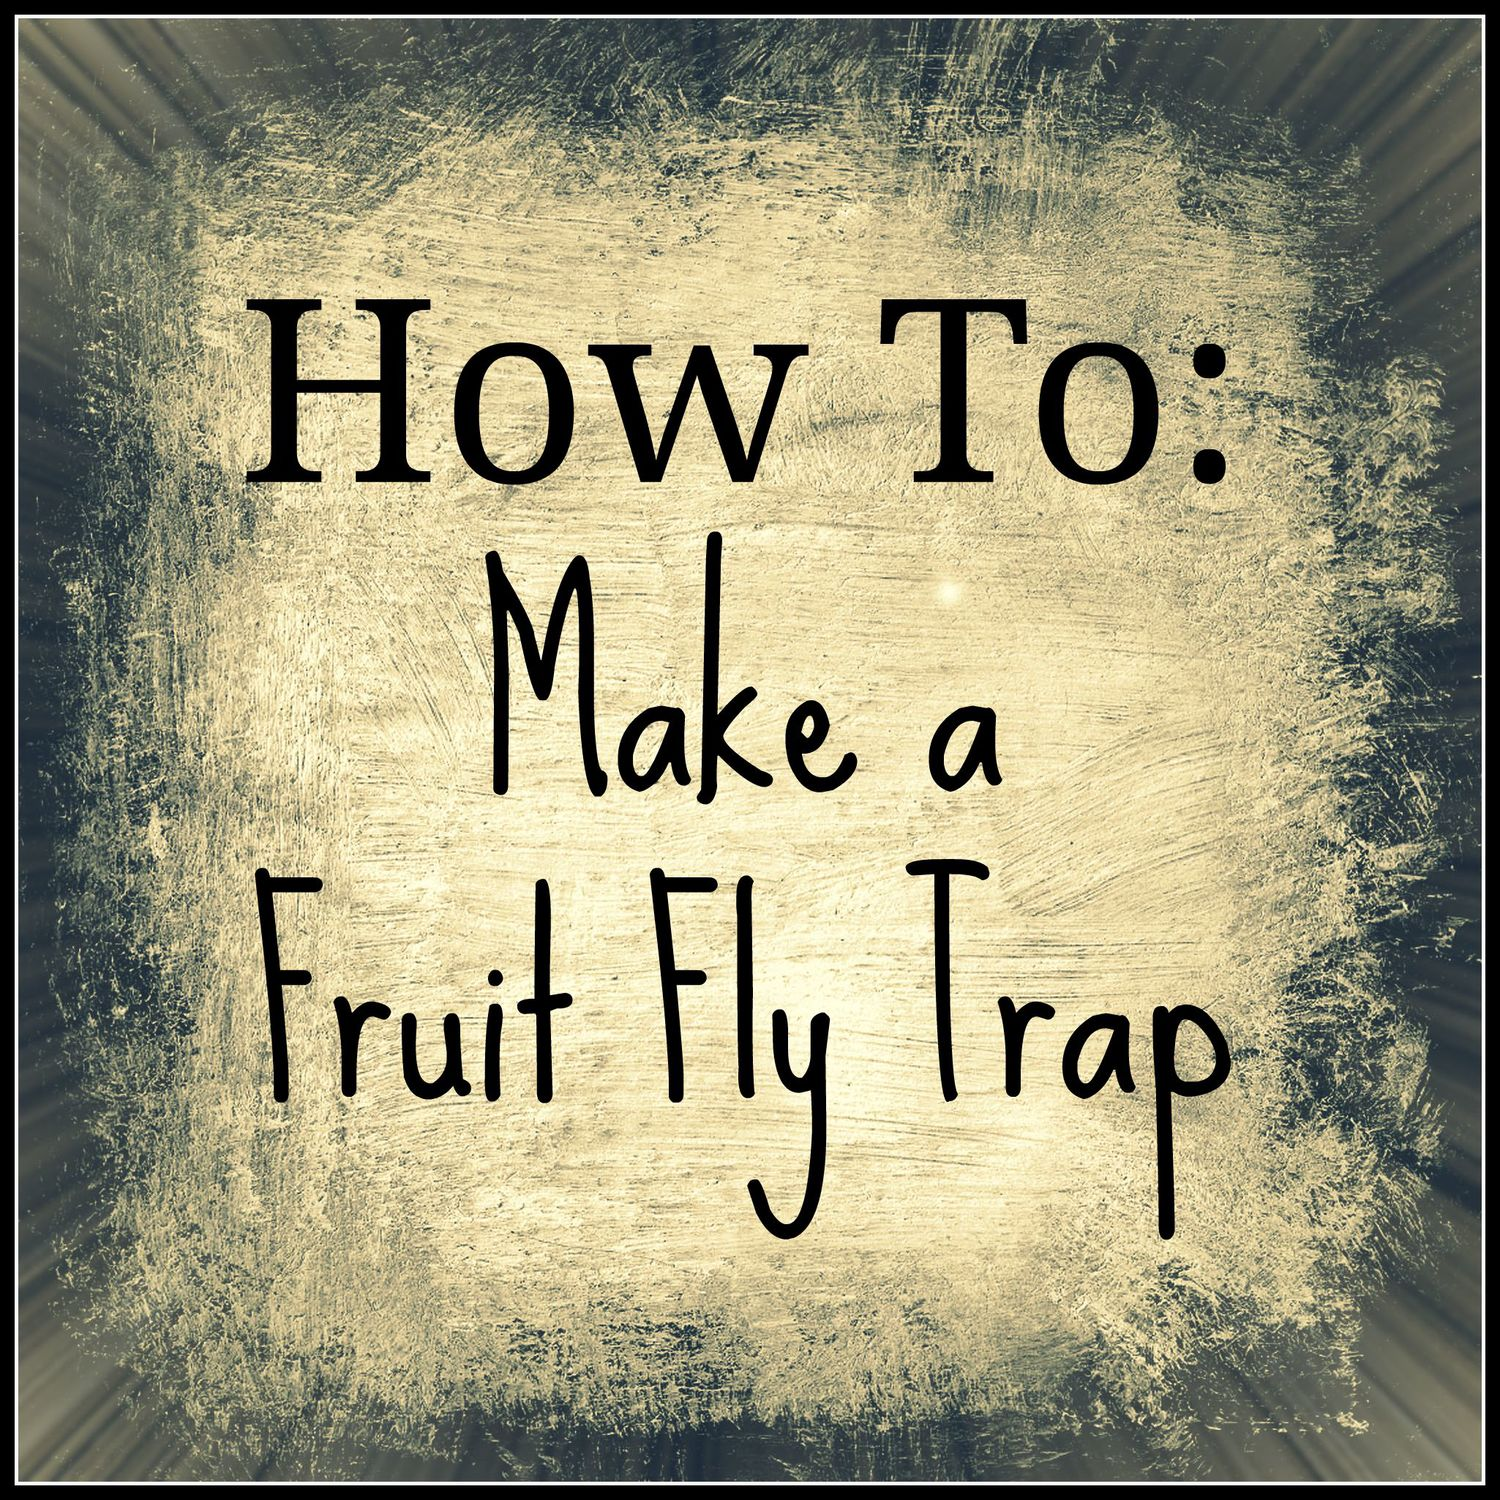 How to Get Rid of Fruit Flies — Hillary with two Ls (please)